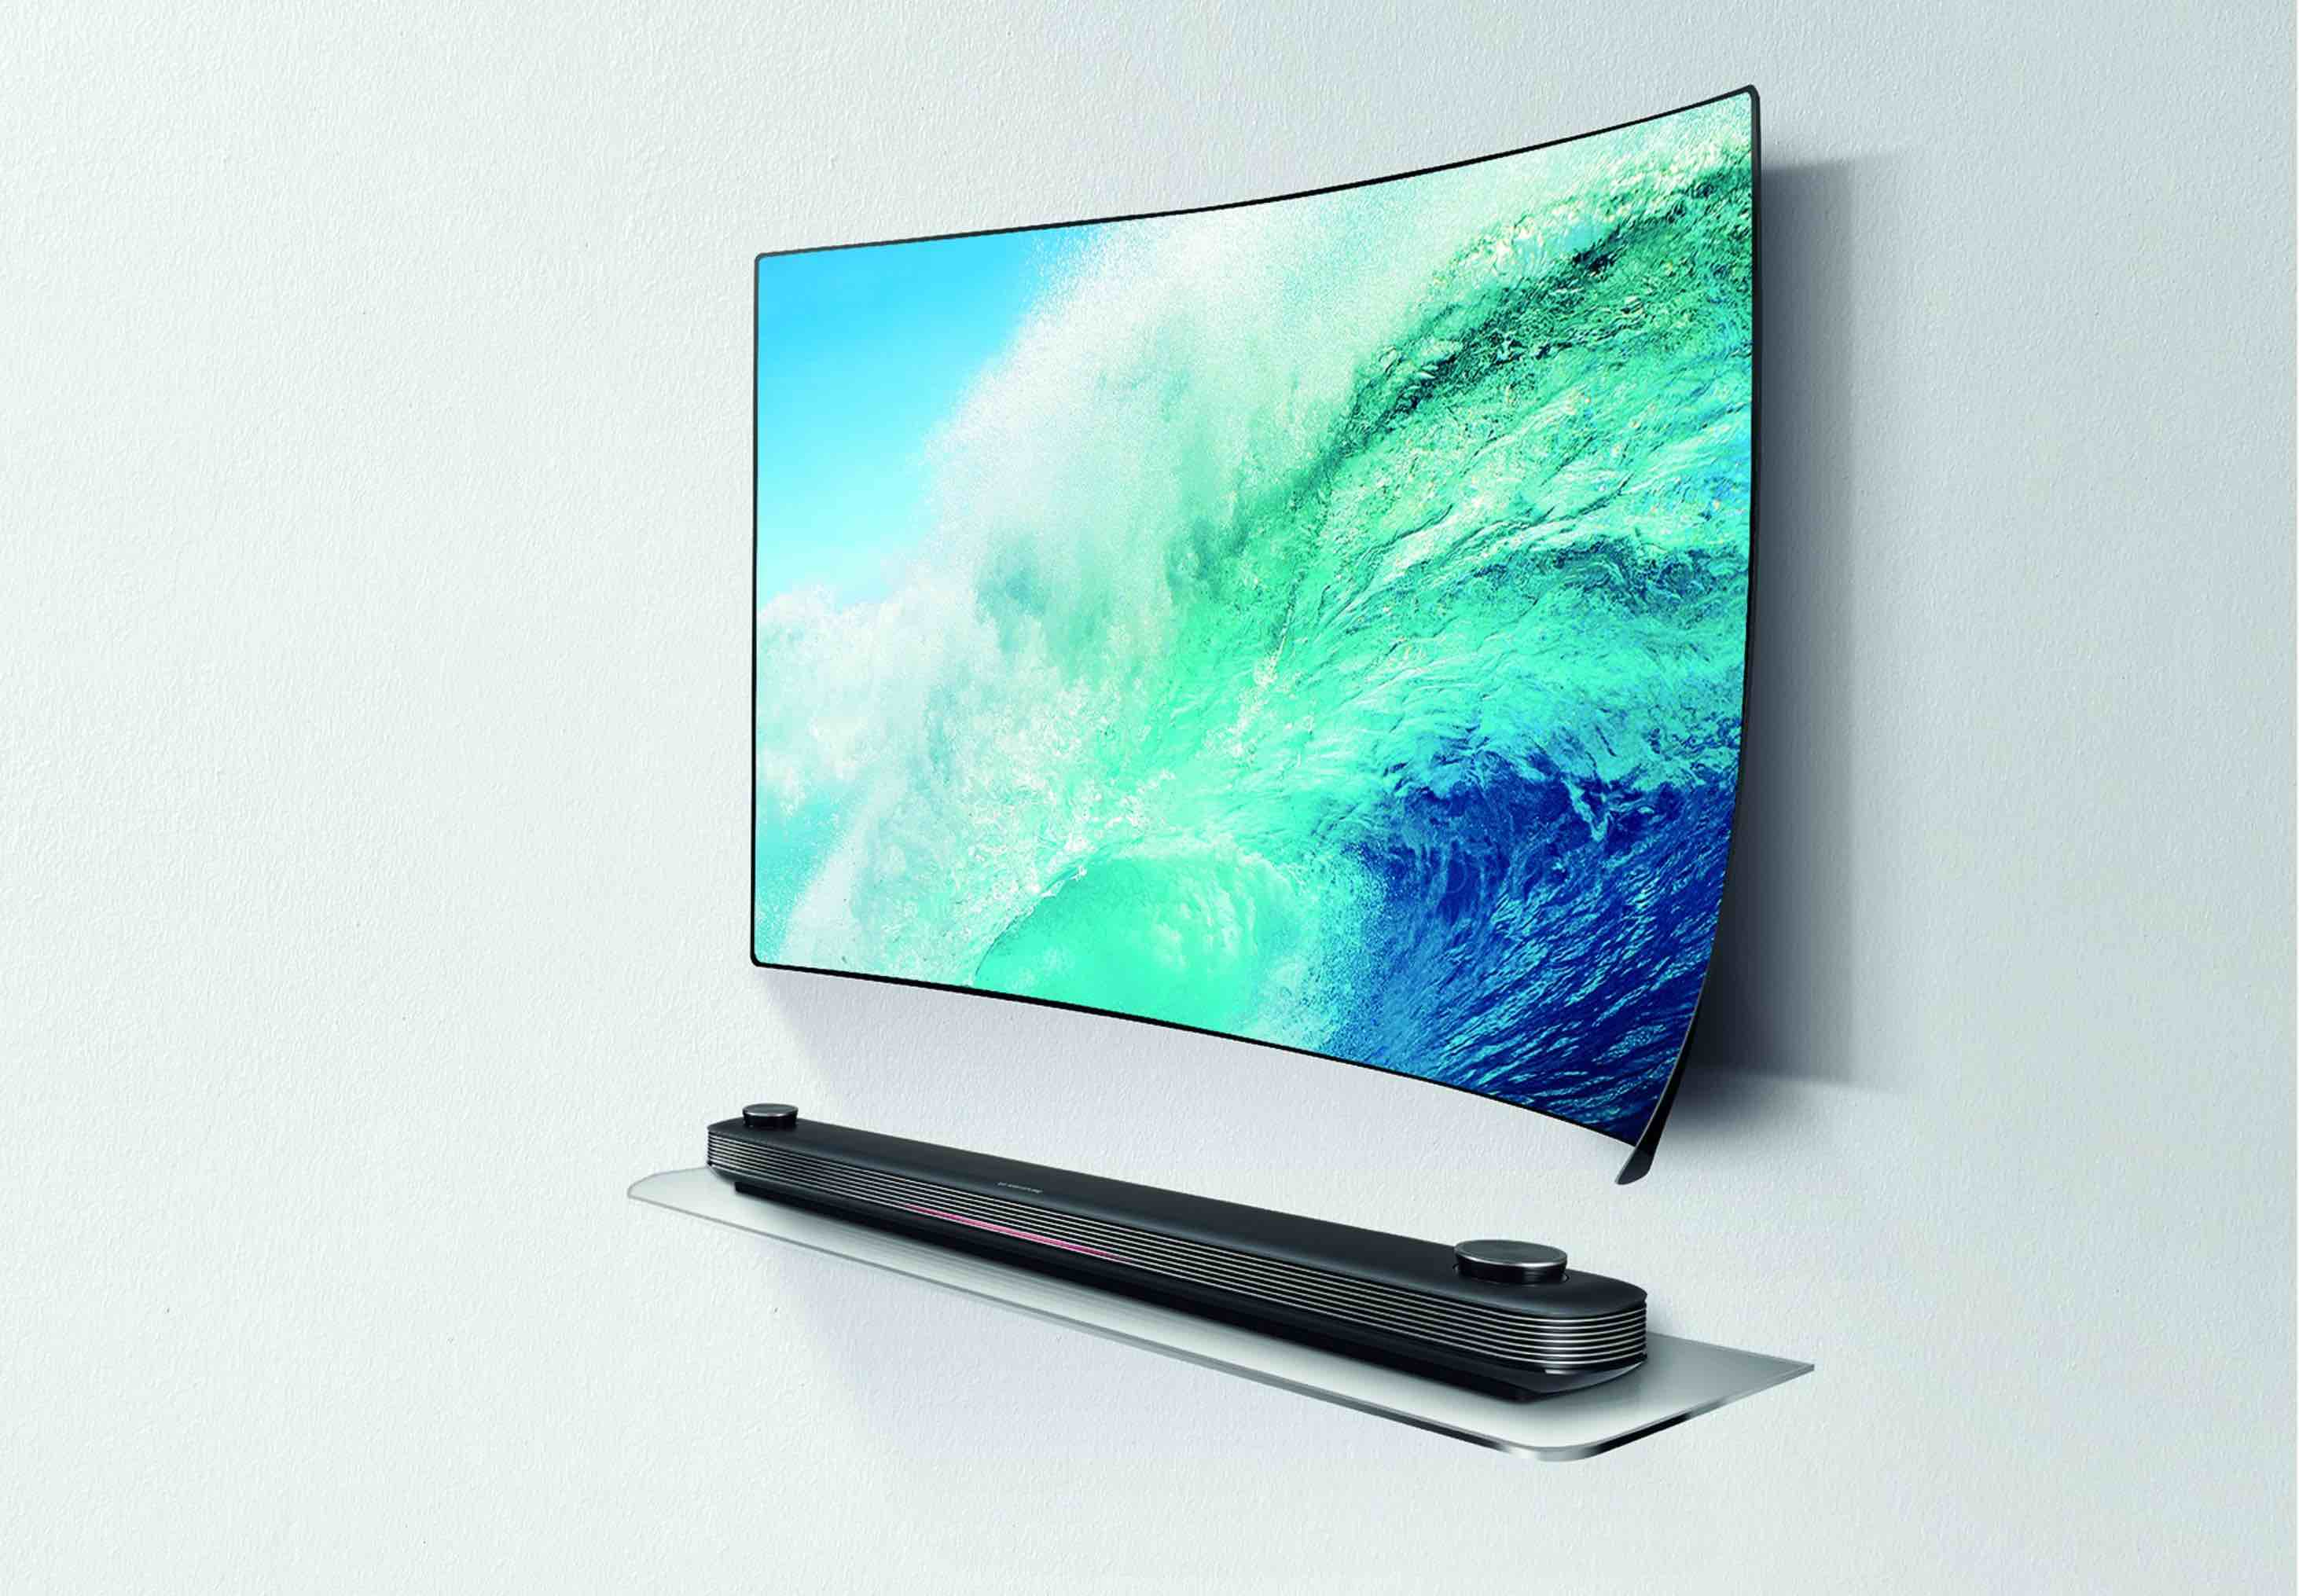 LG Signature OLED TV W Now Available Across the Region